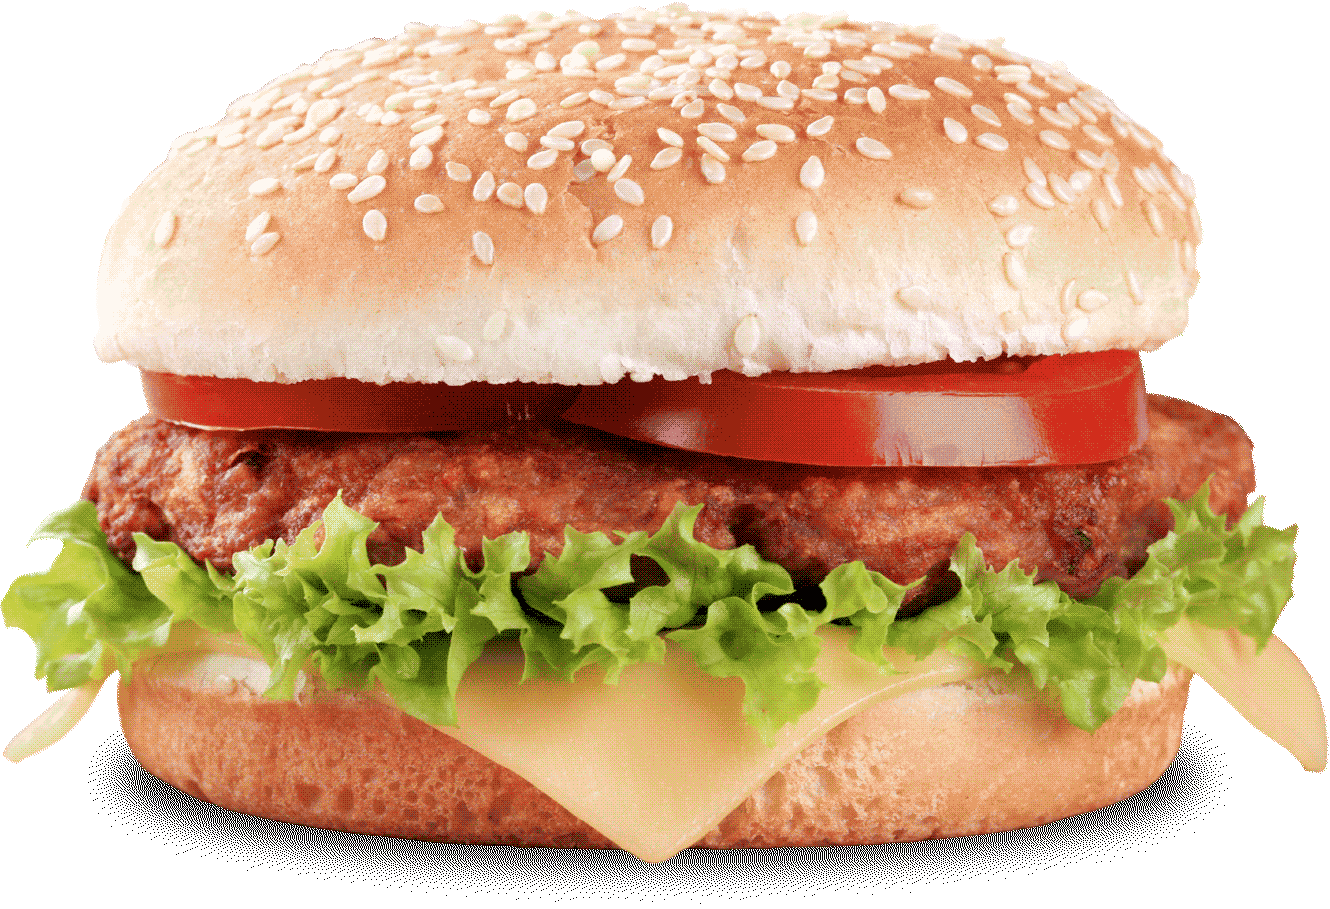 This high quality free PNG image without any background is about burger, fast food, ham, meat, fast food burger, mc donalds and burger king.